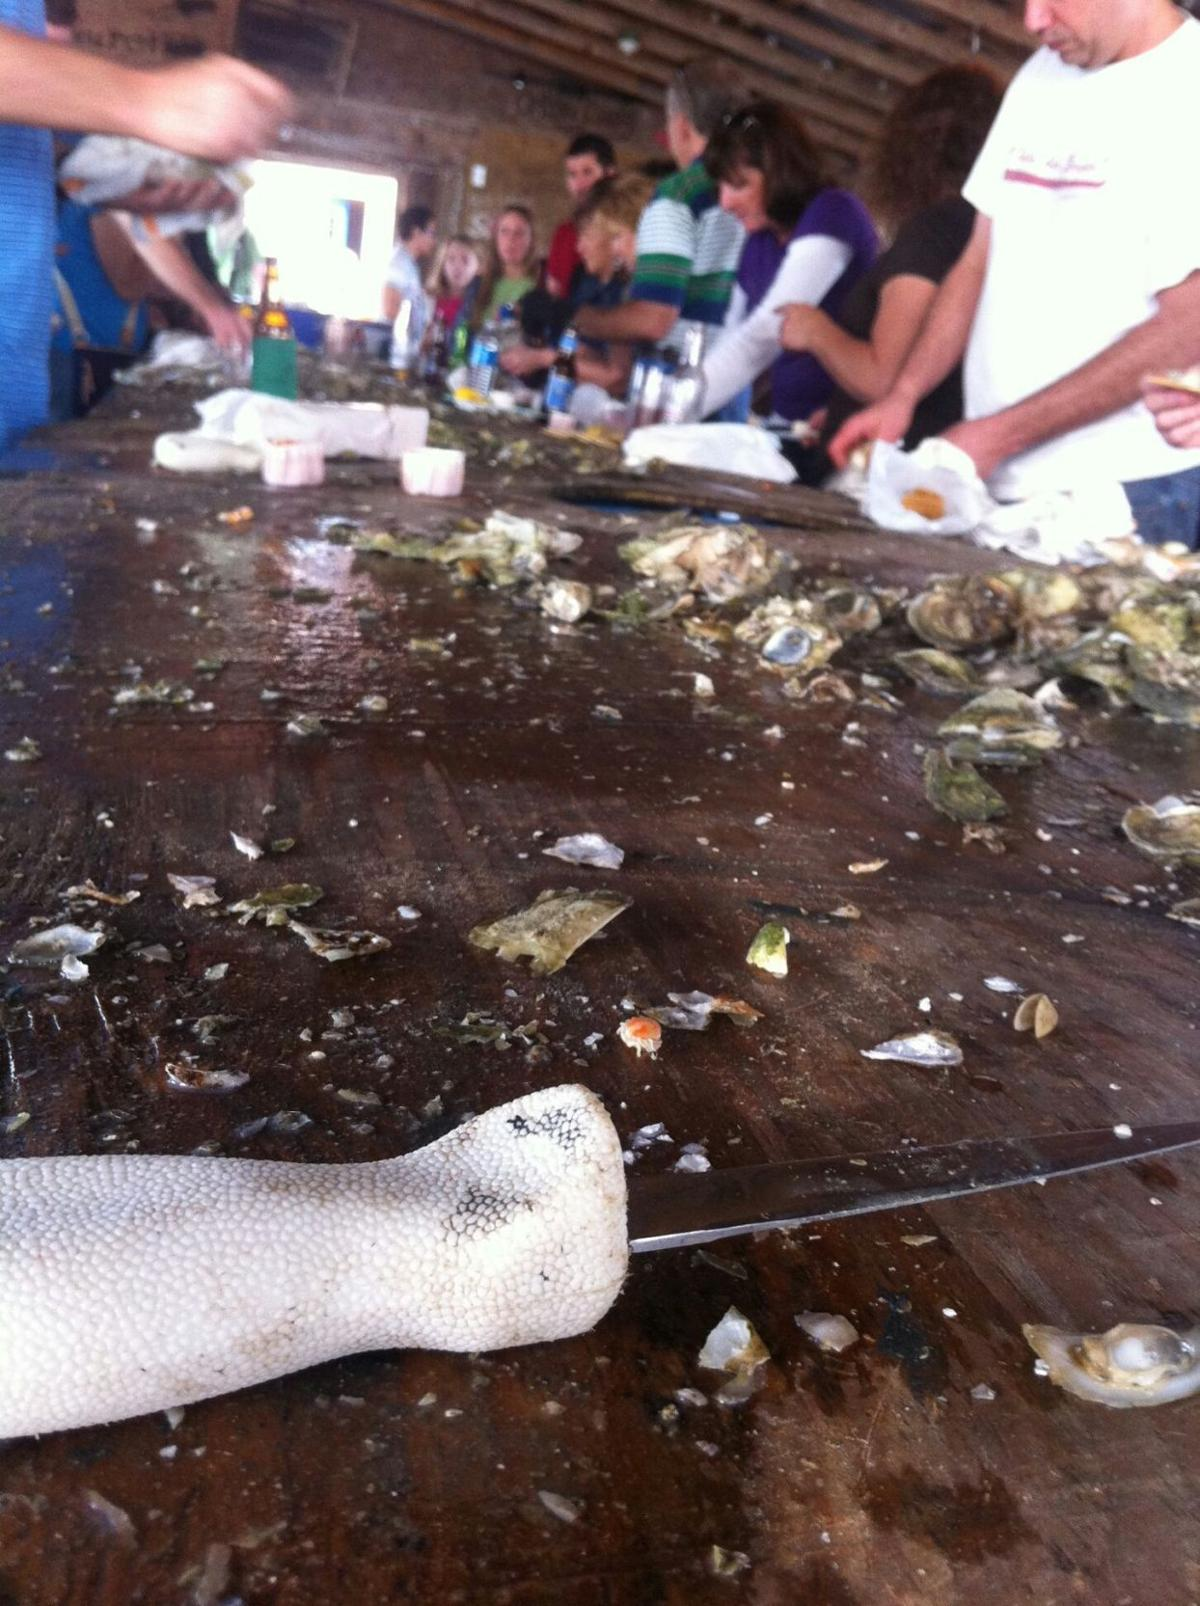 Fields to Families to host oyster roast fundraiser